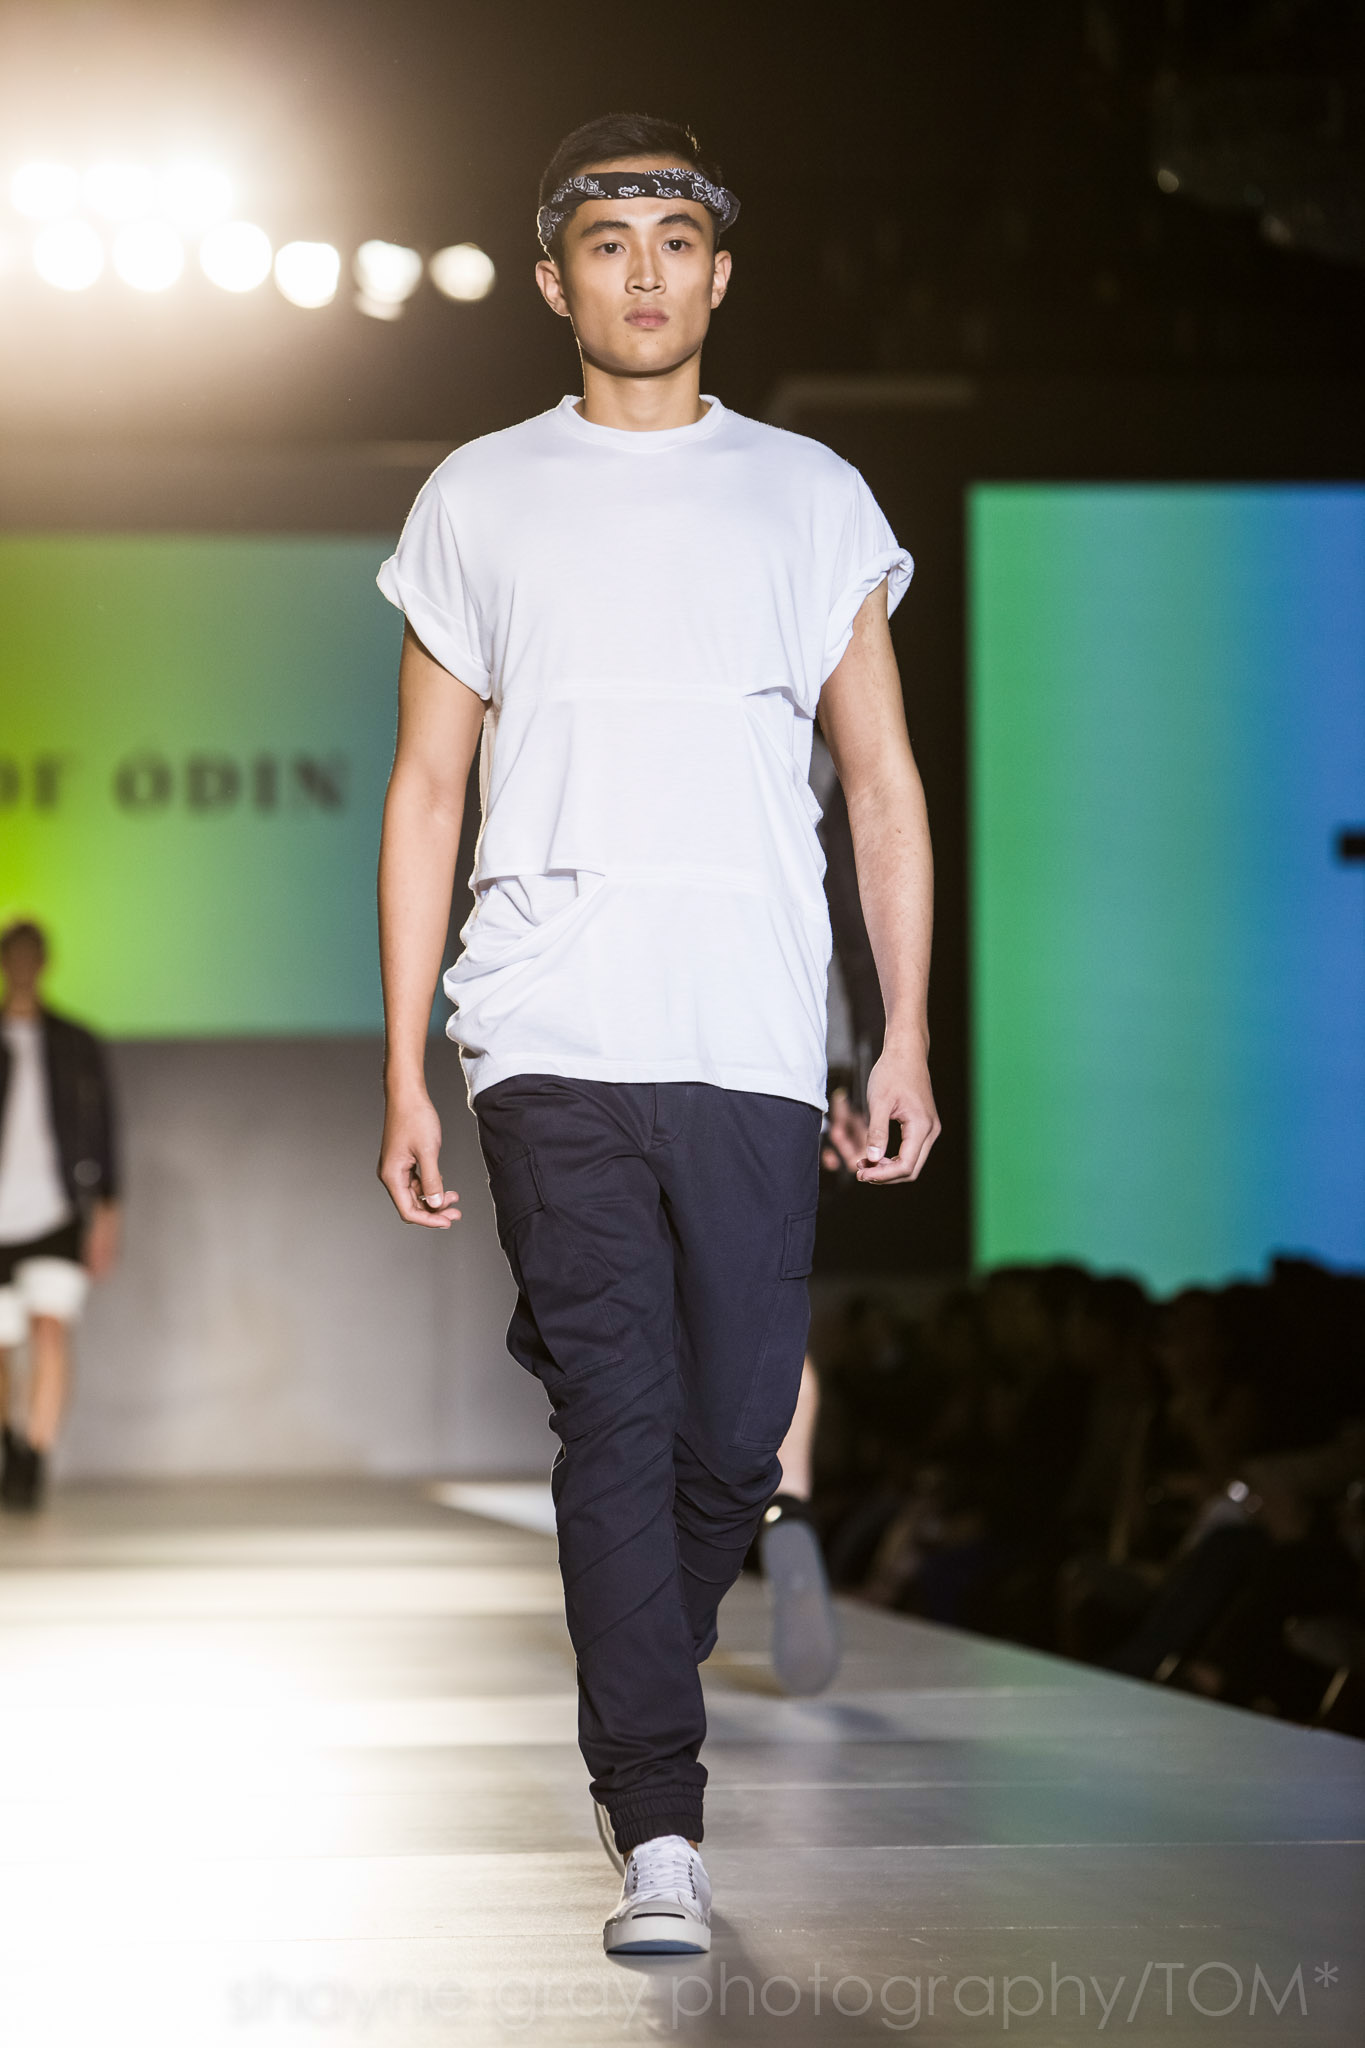 Shayne-Gray-Toronto-men's-fashion_week-TOM-sons-of-odin-8556.jpg